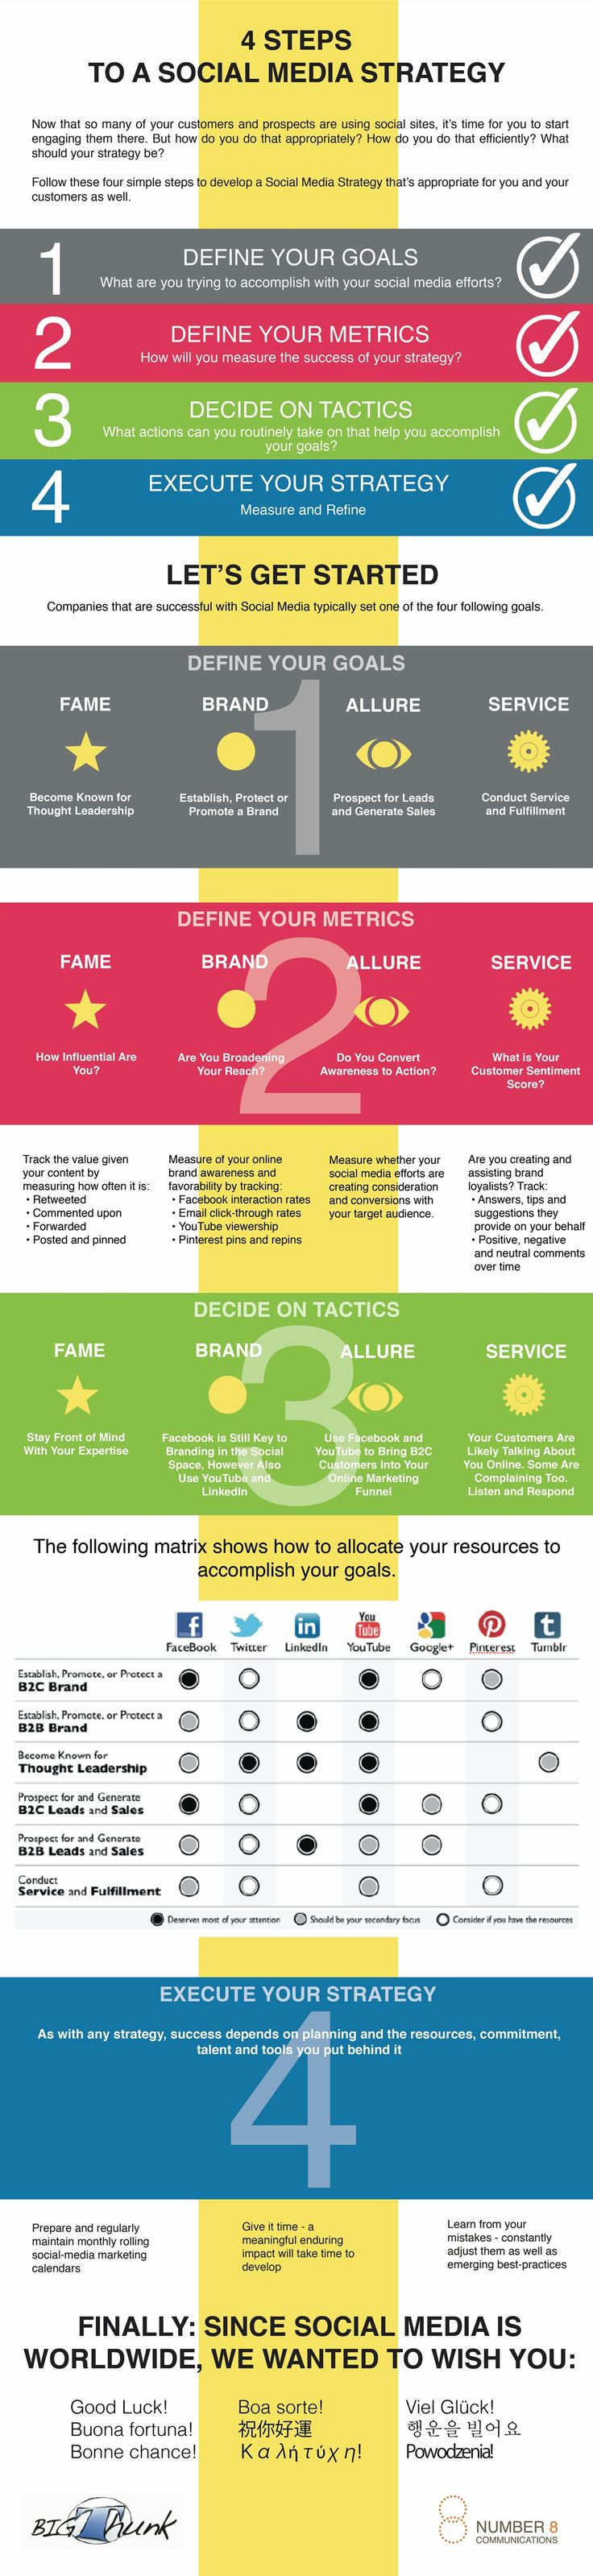 Four Steps to a Social Media Strategy [Infographic]. #seo #seoservicescompanies